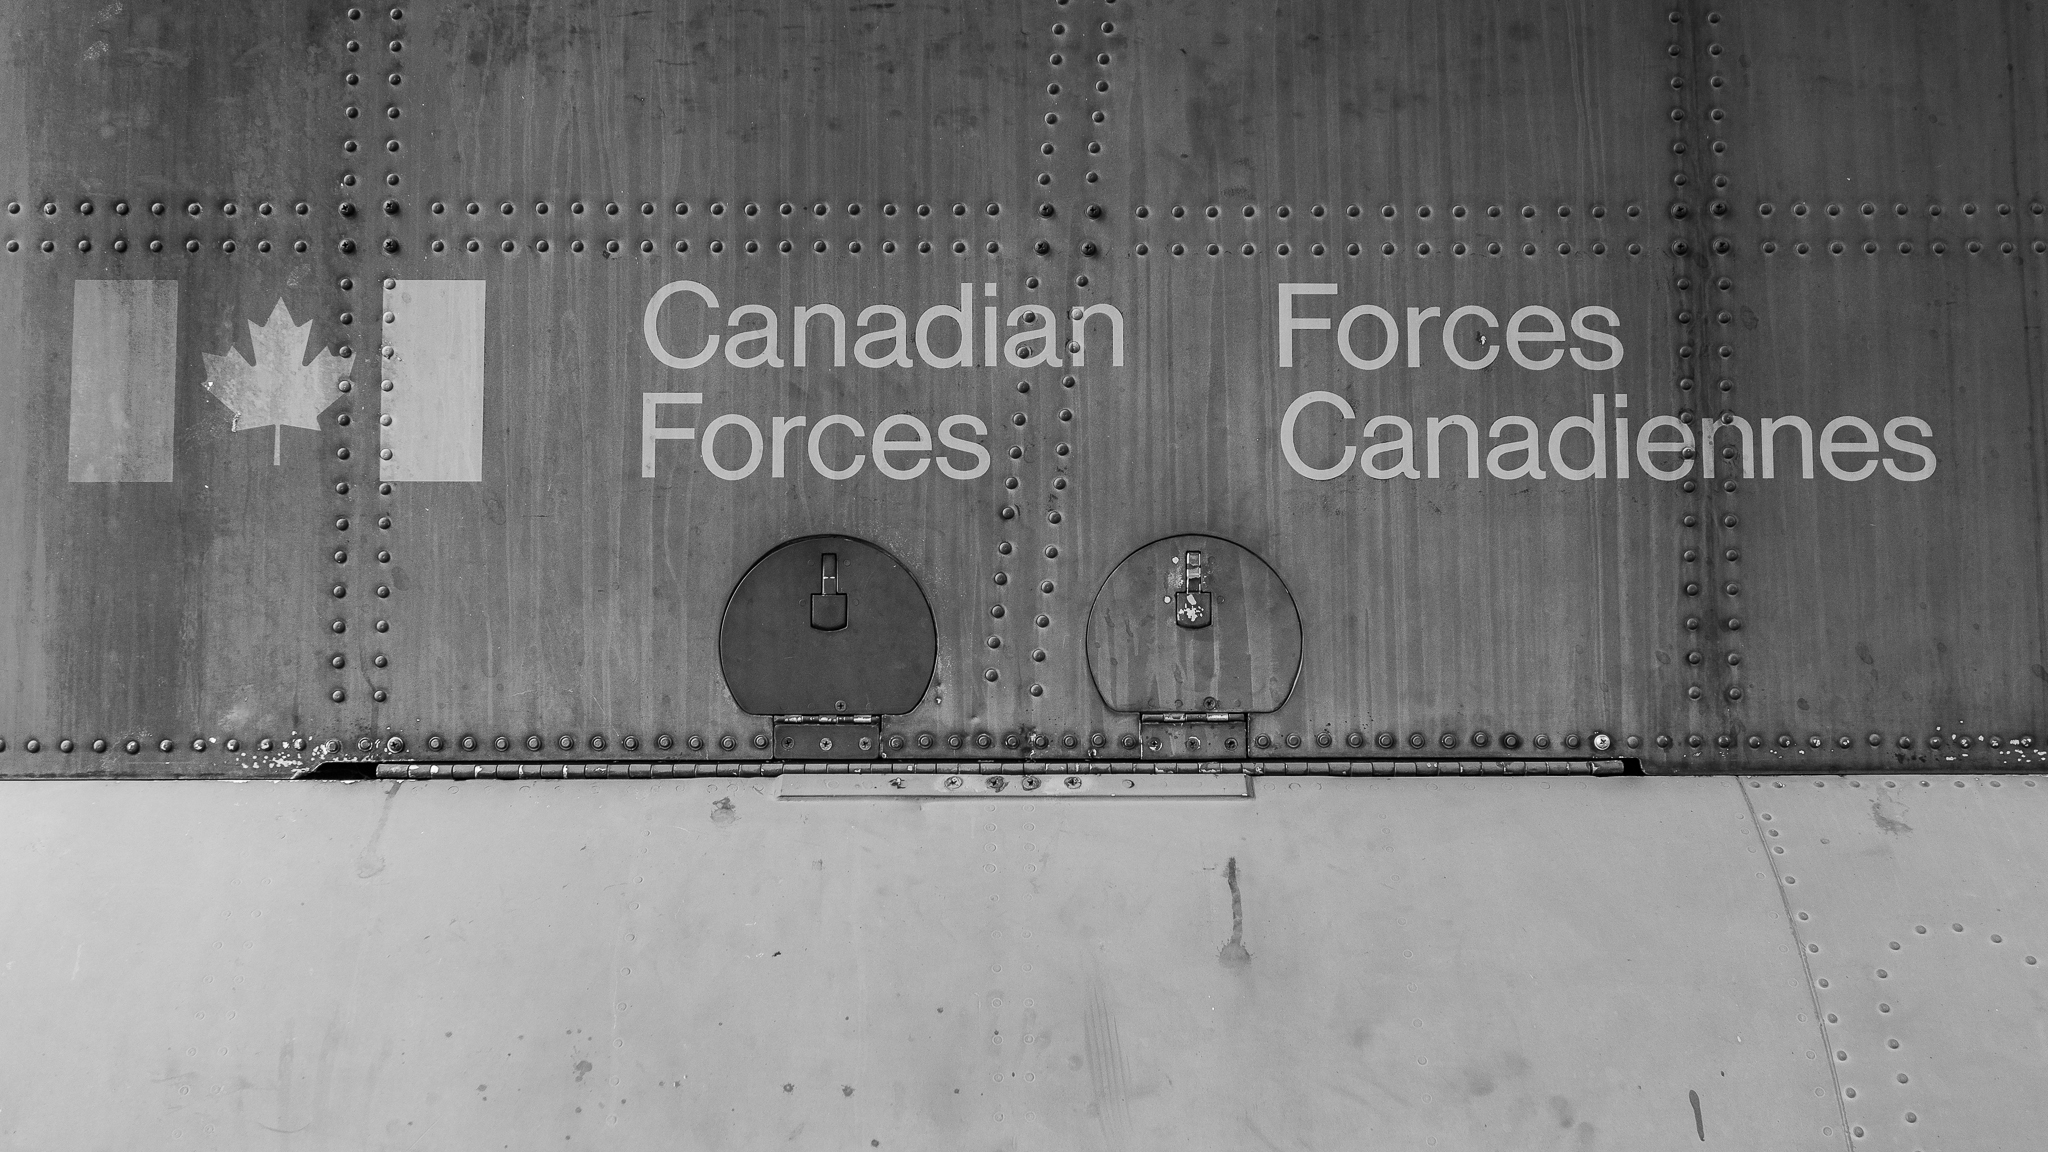 Canadian Forces (1/200s, f/6.3, ISO250)